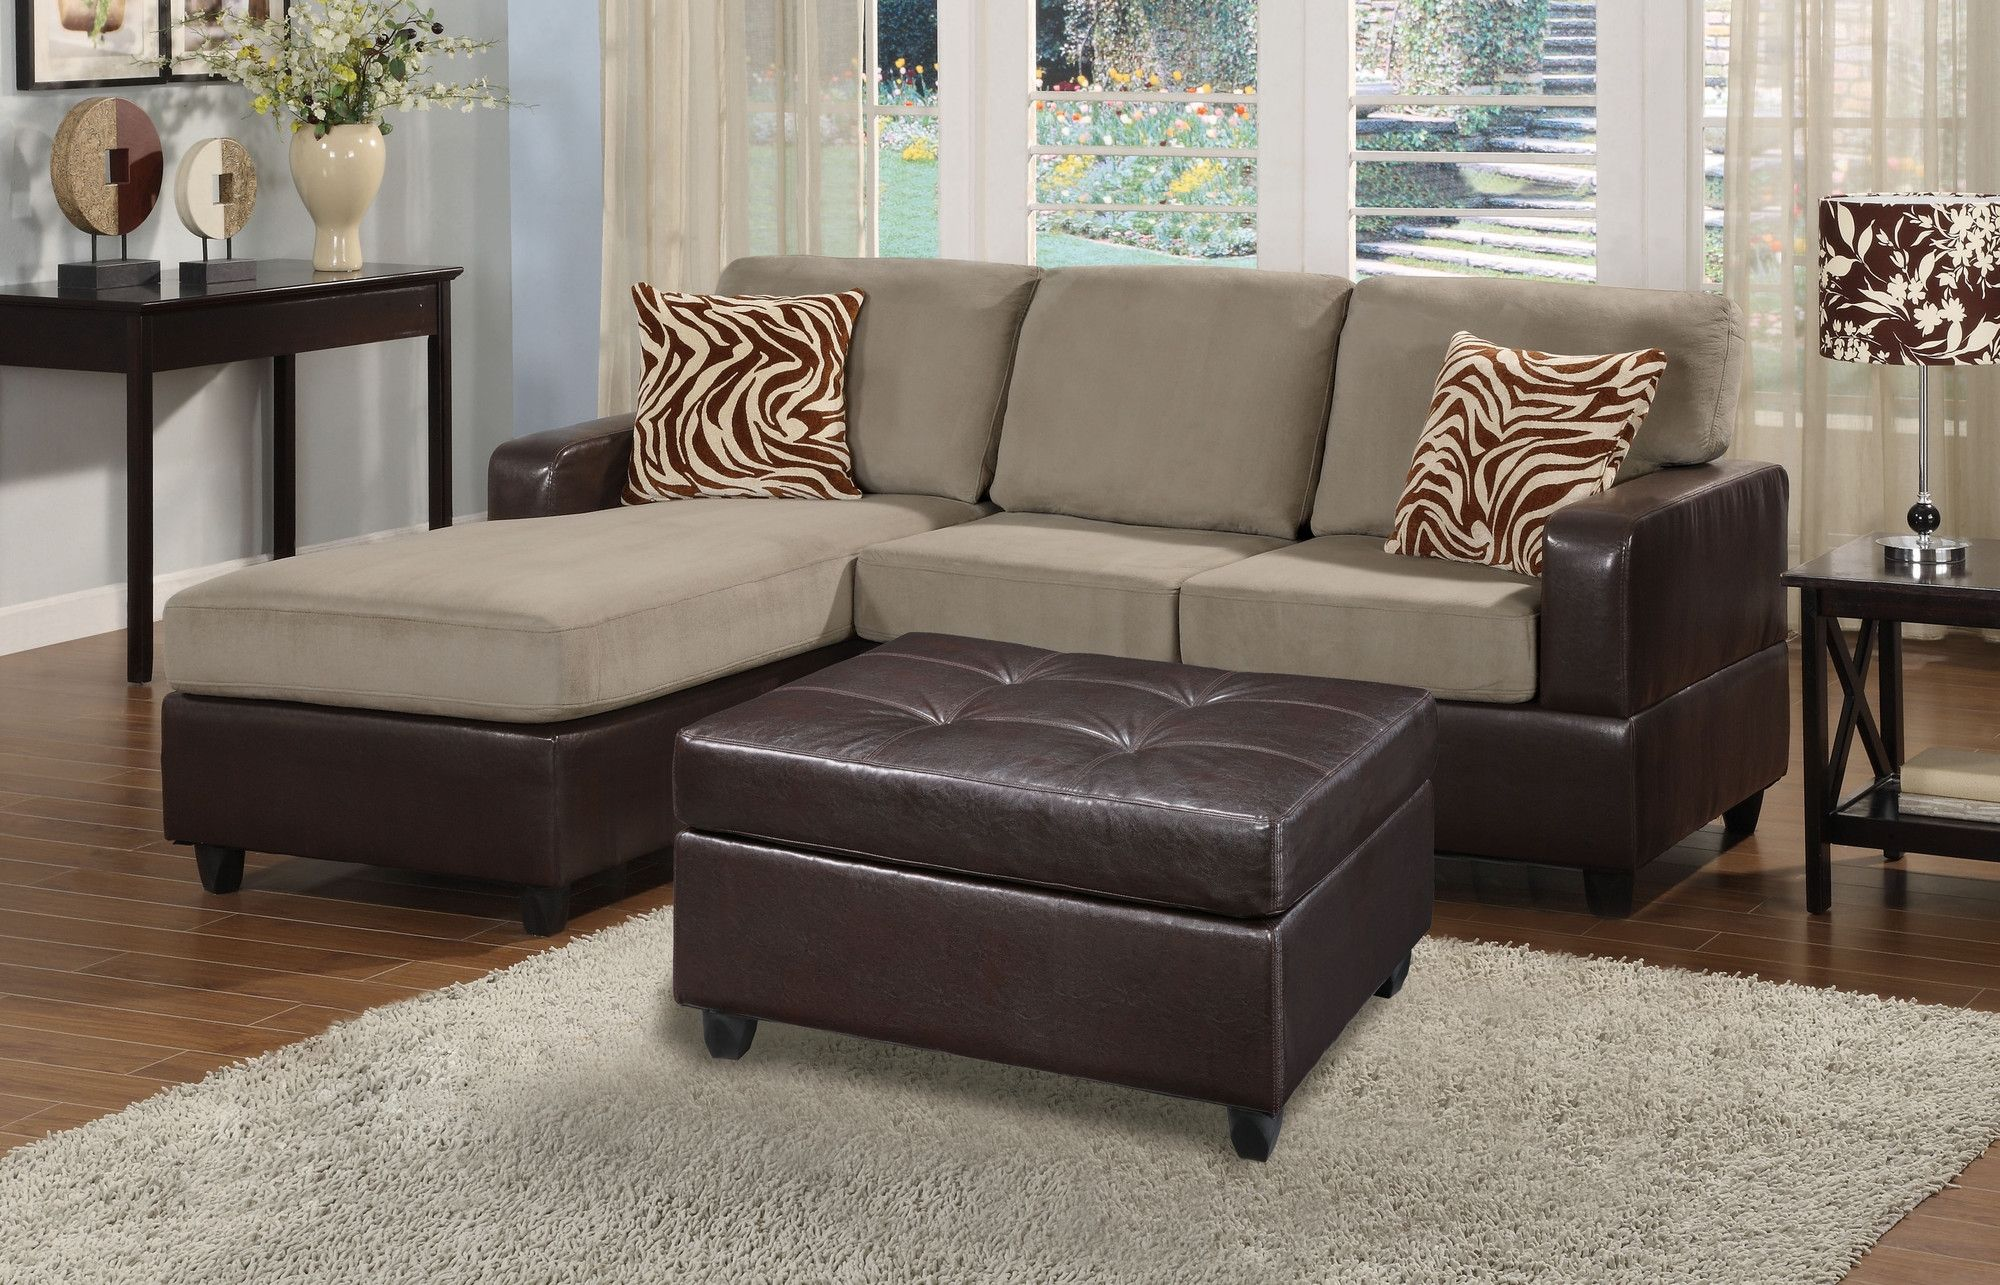 The Gray Ikea Manstad Cover Replacement Is for Ikea Manstad Sofa